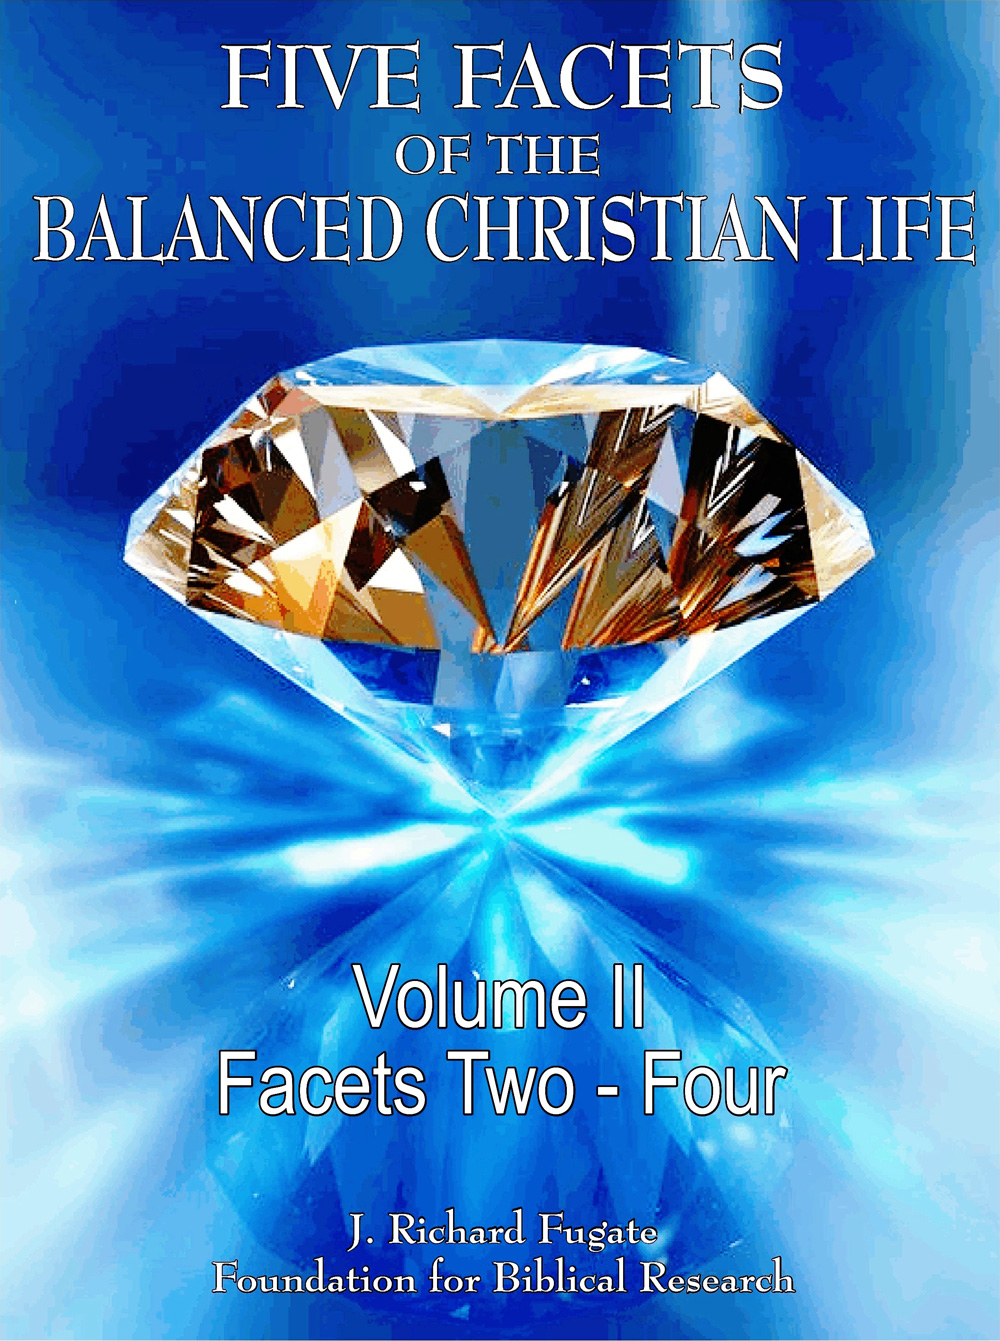 Five-Facets-Vol2-150317